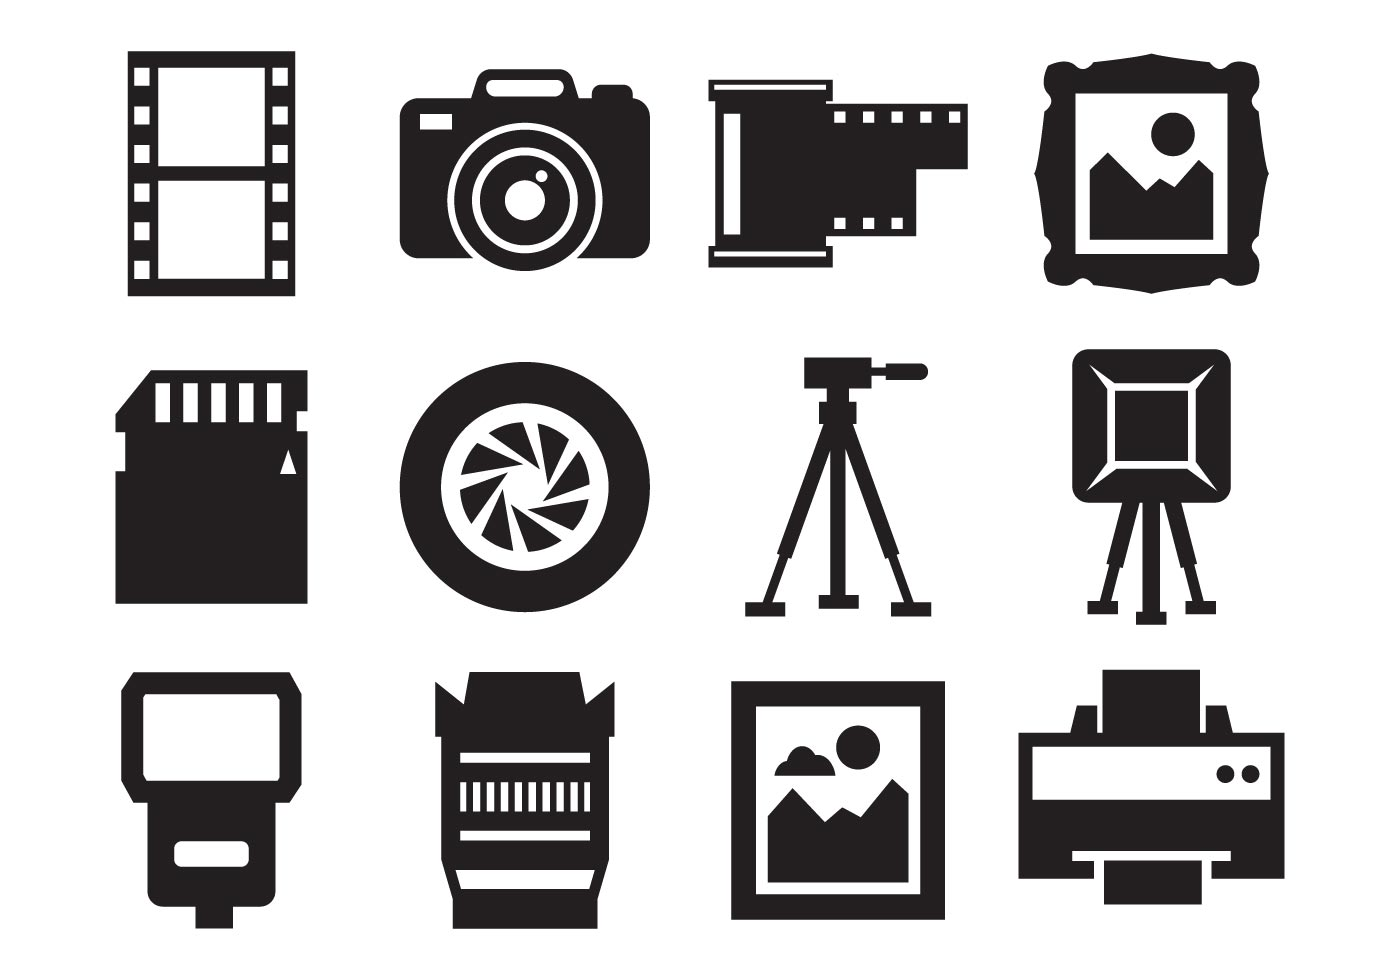 Camera Free Vector Art 52 276 Free Downloads